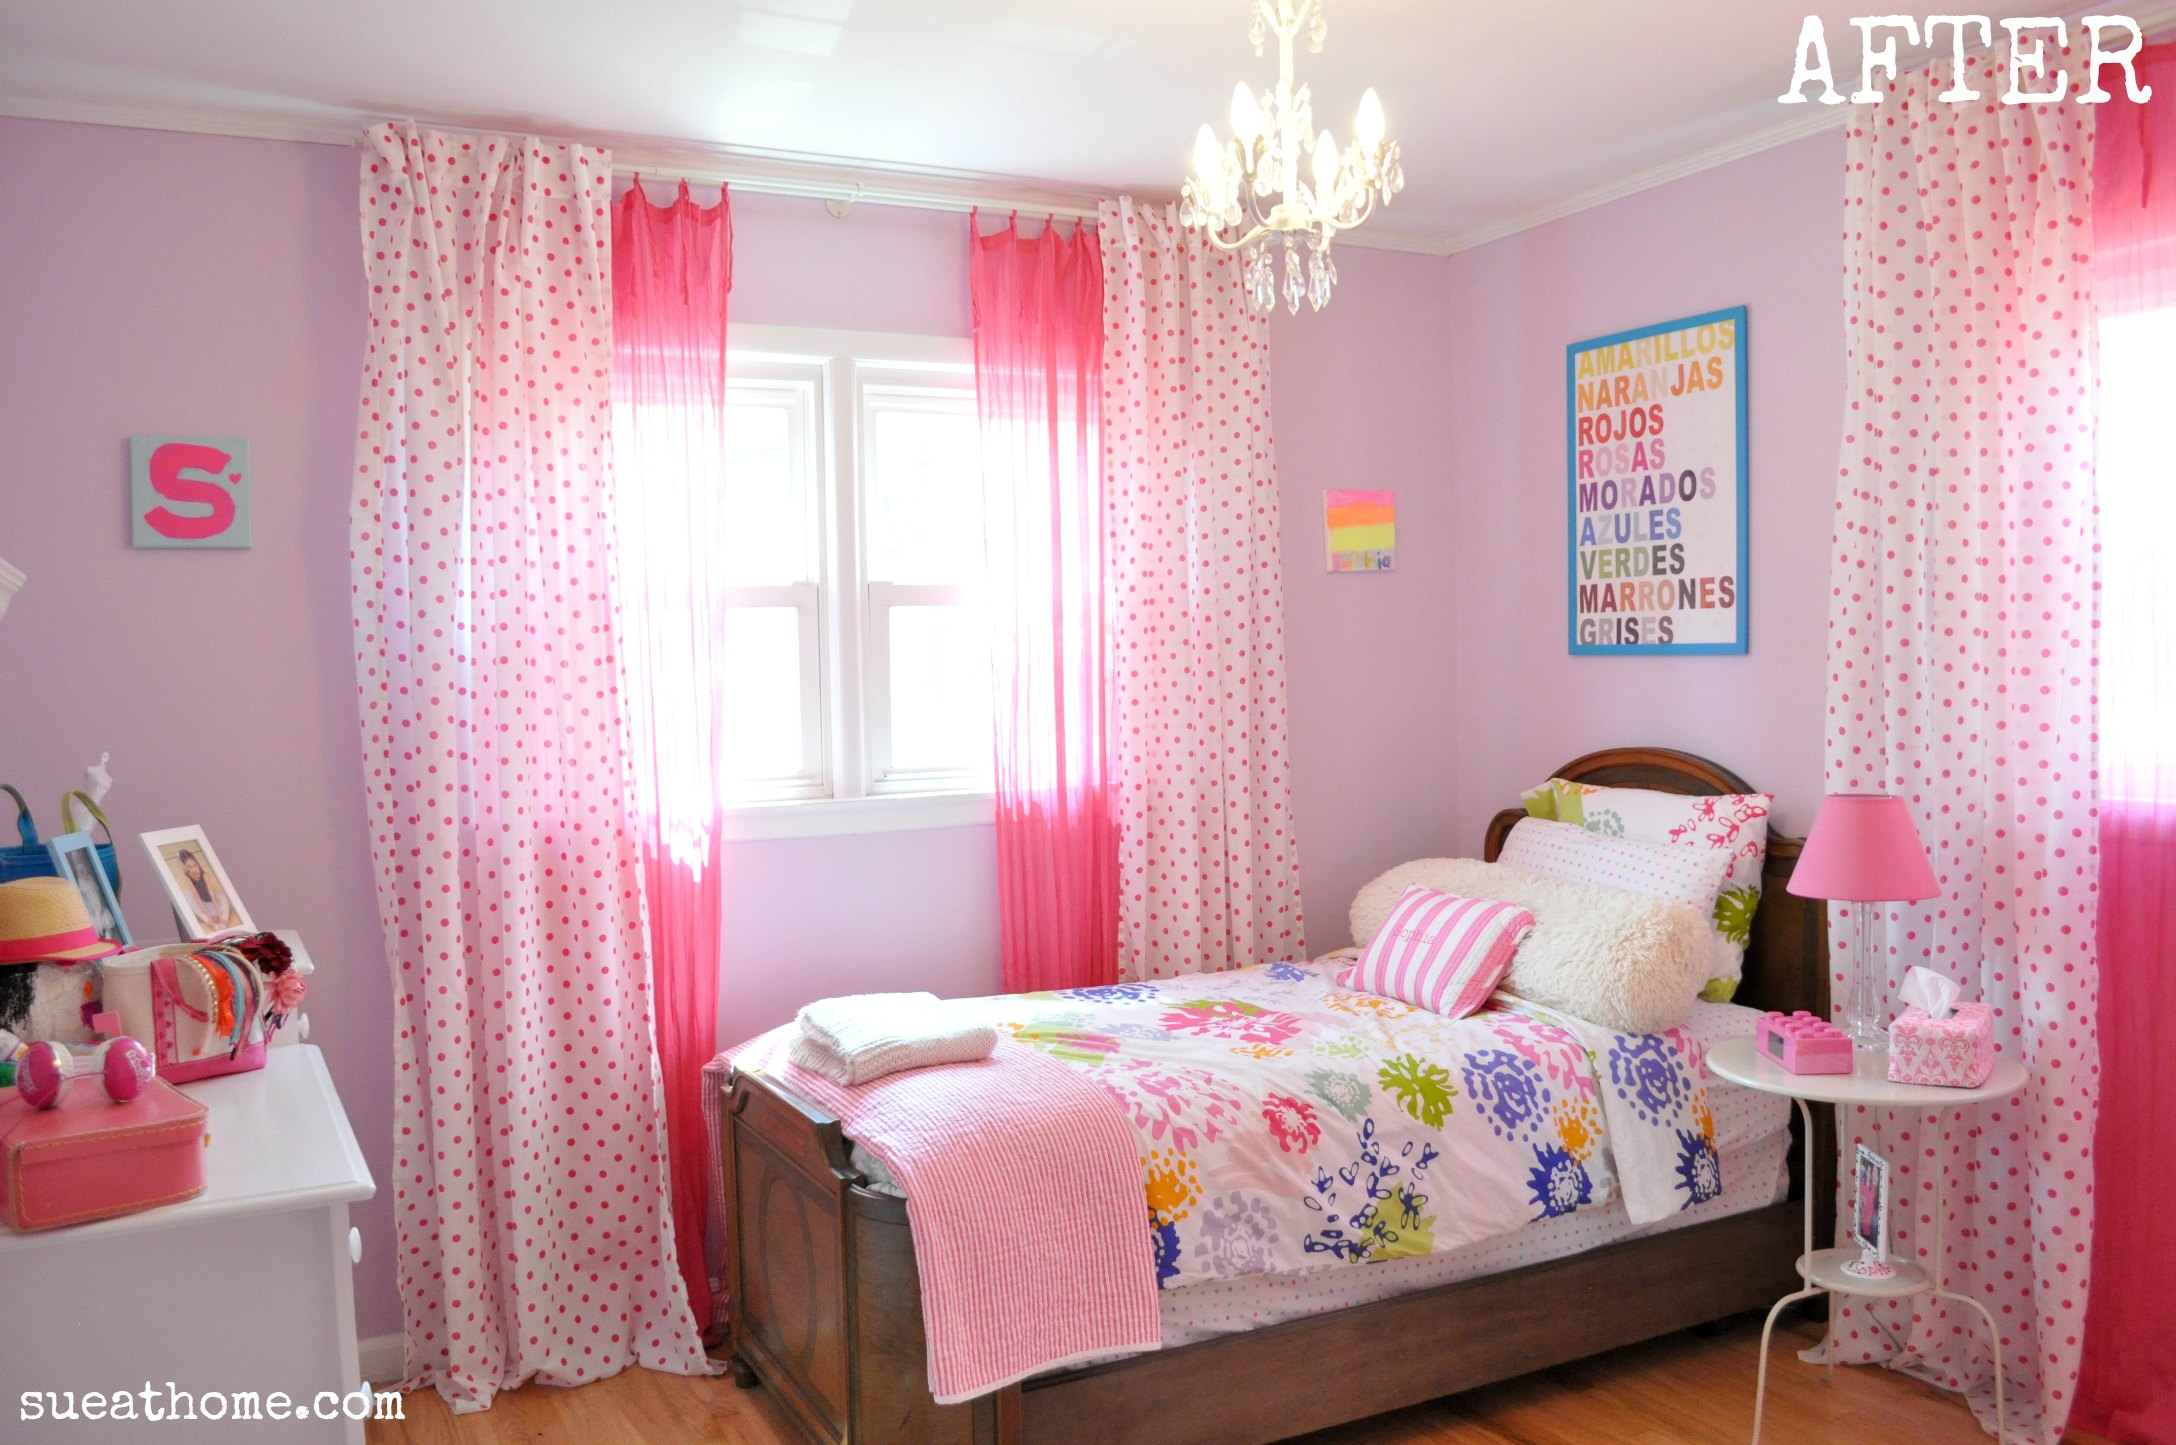 7 Inspiring Kid Room Color Options For Your Little Ones: Girly Girls Room